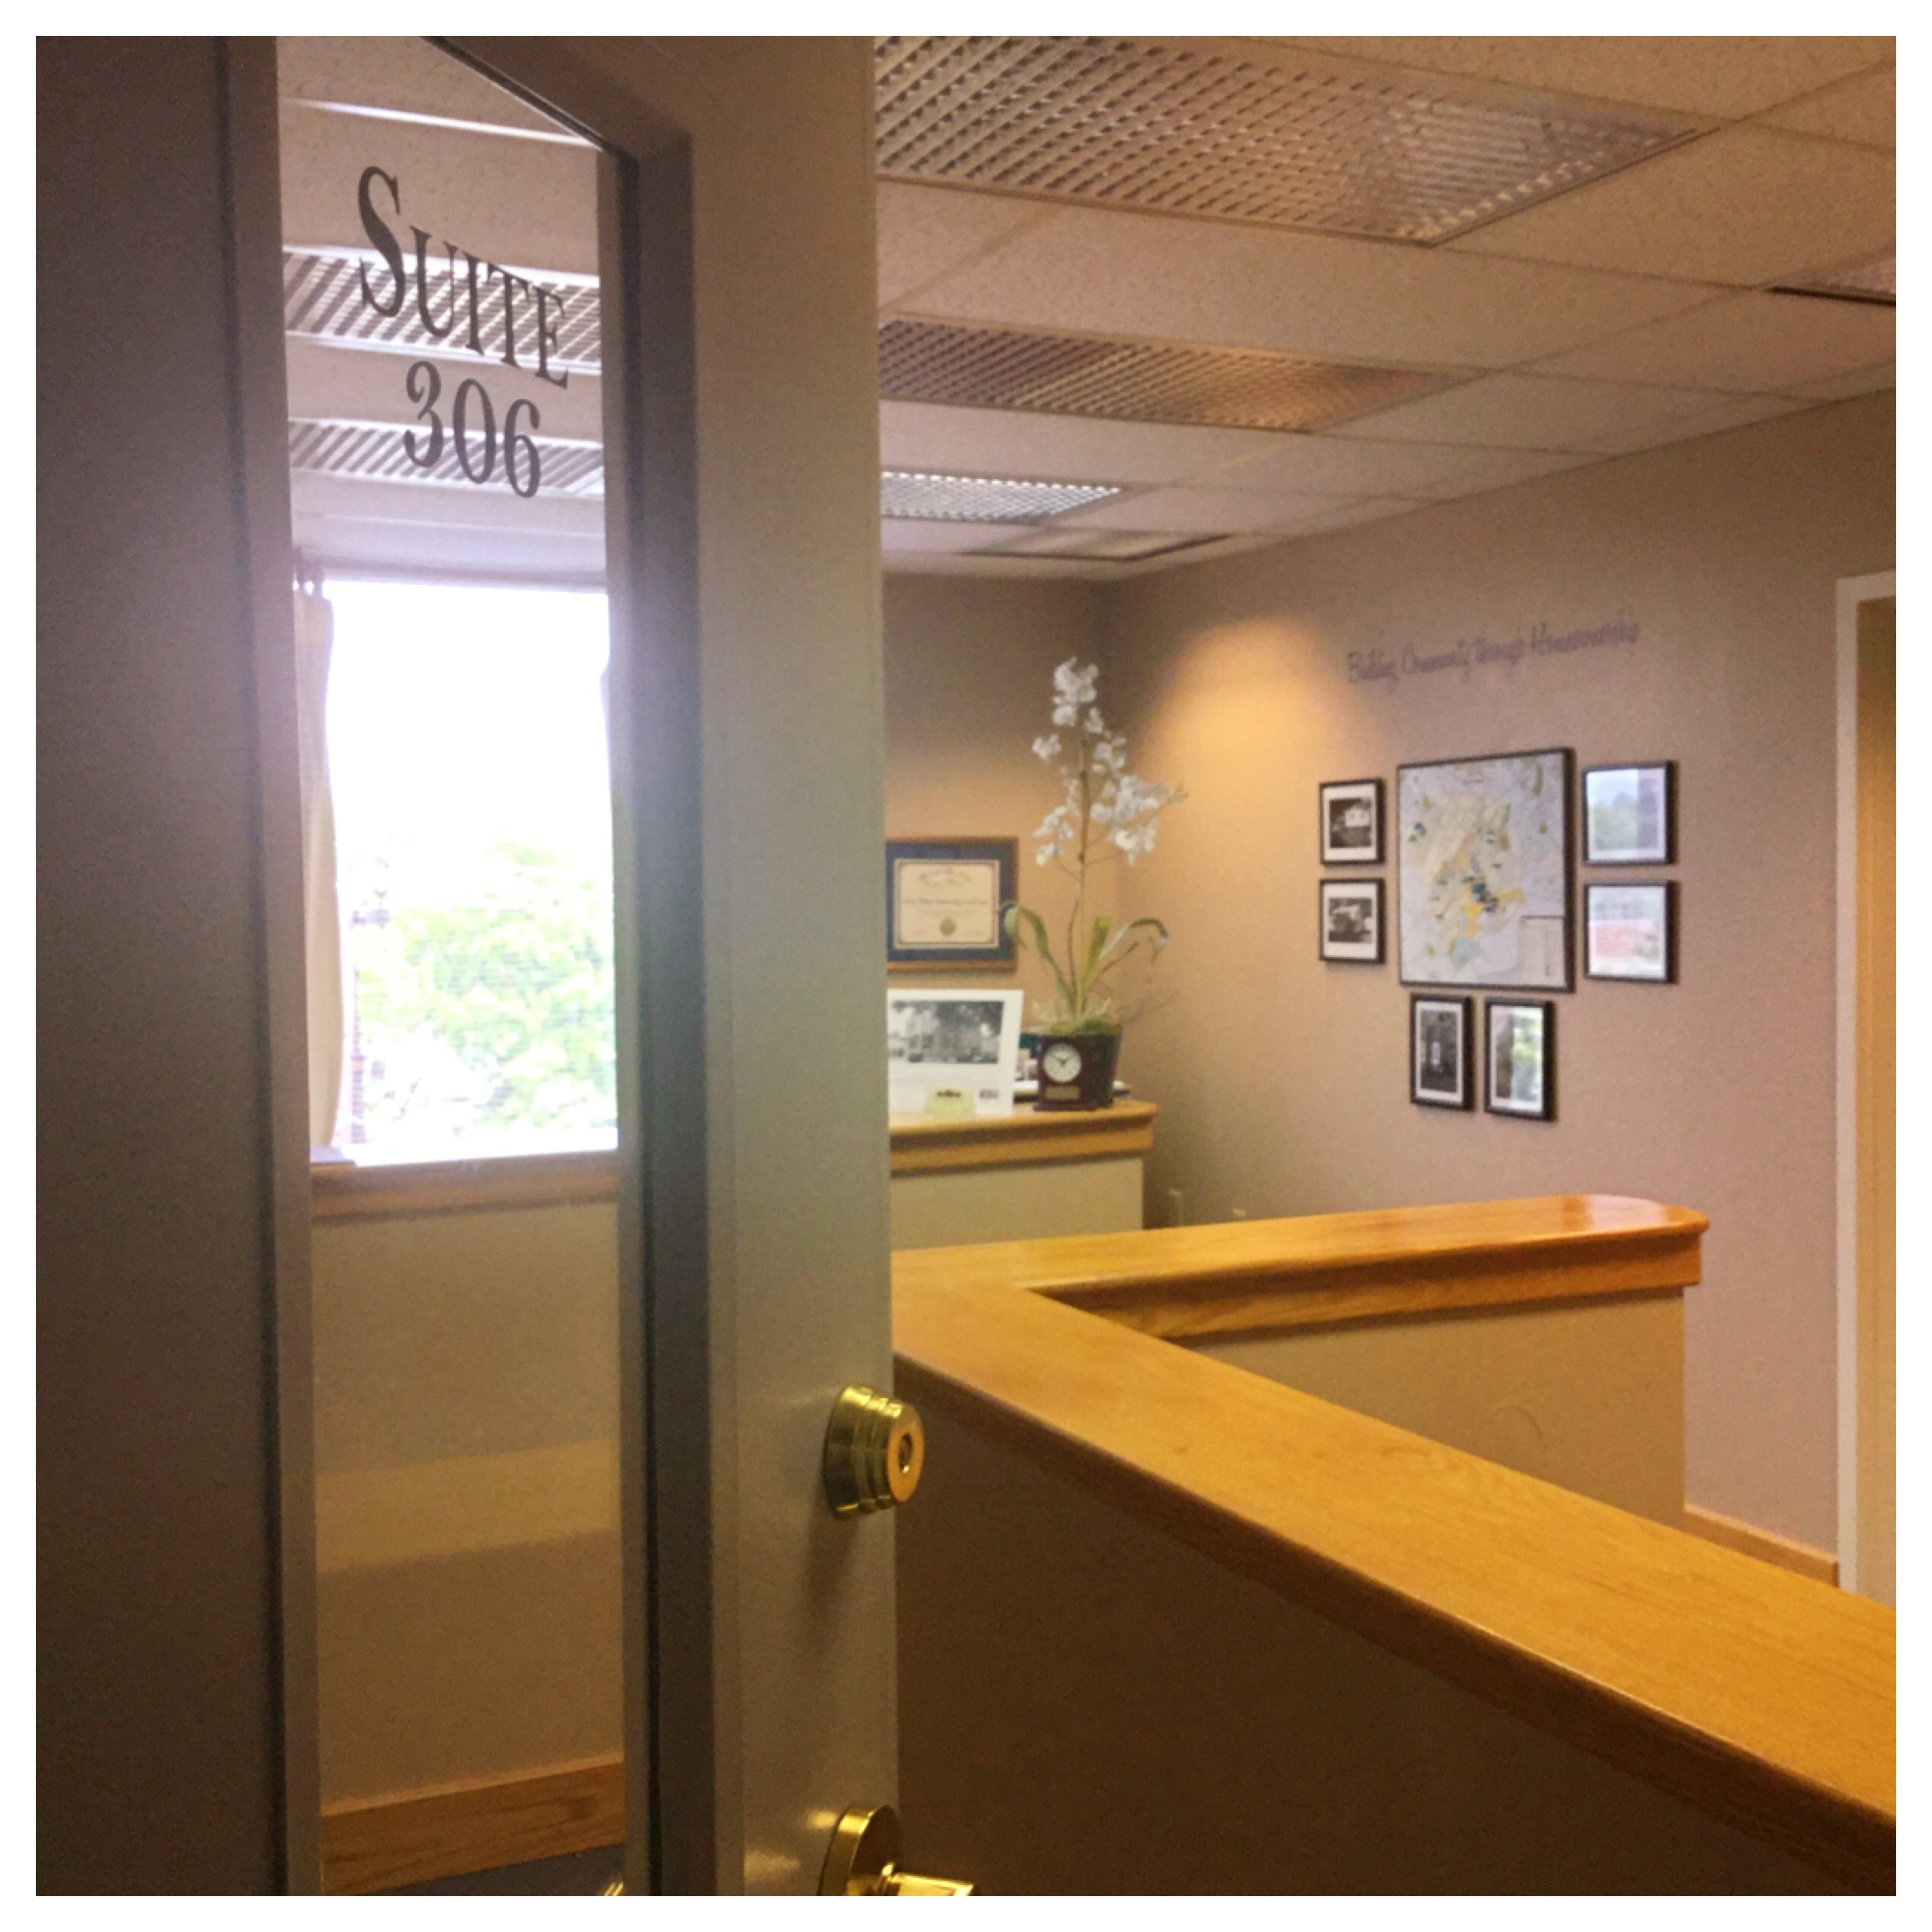 New CCHLT Office 1315 S. Allen St. Suite 306